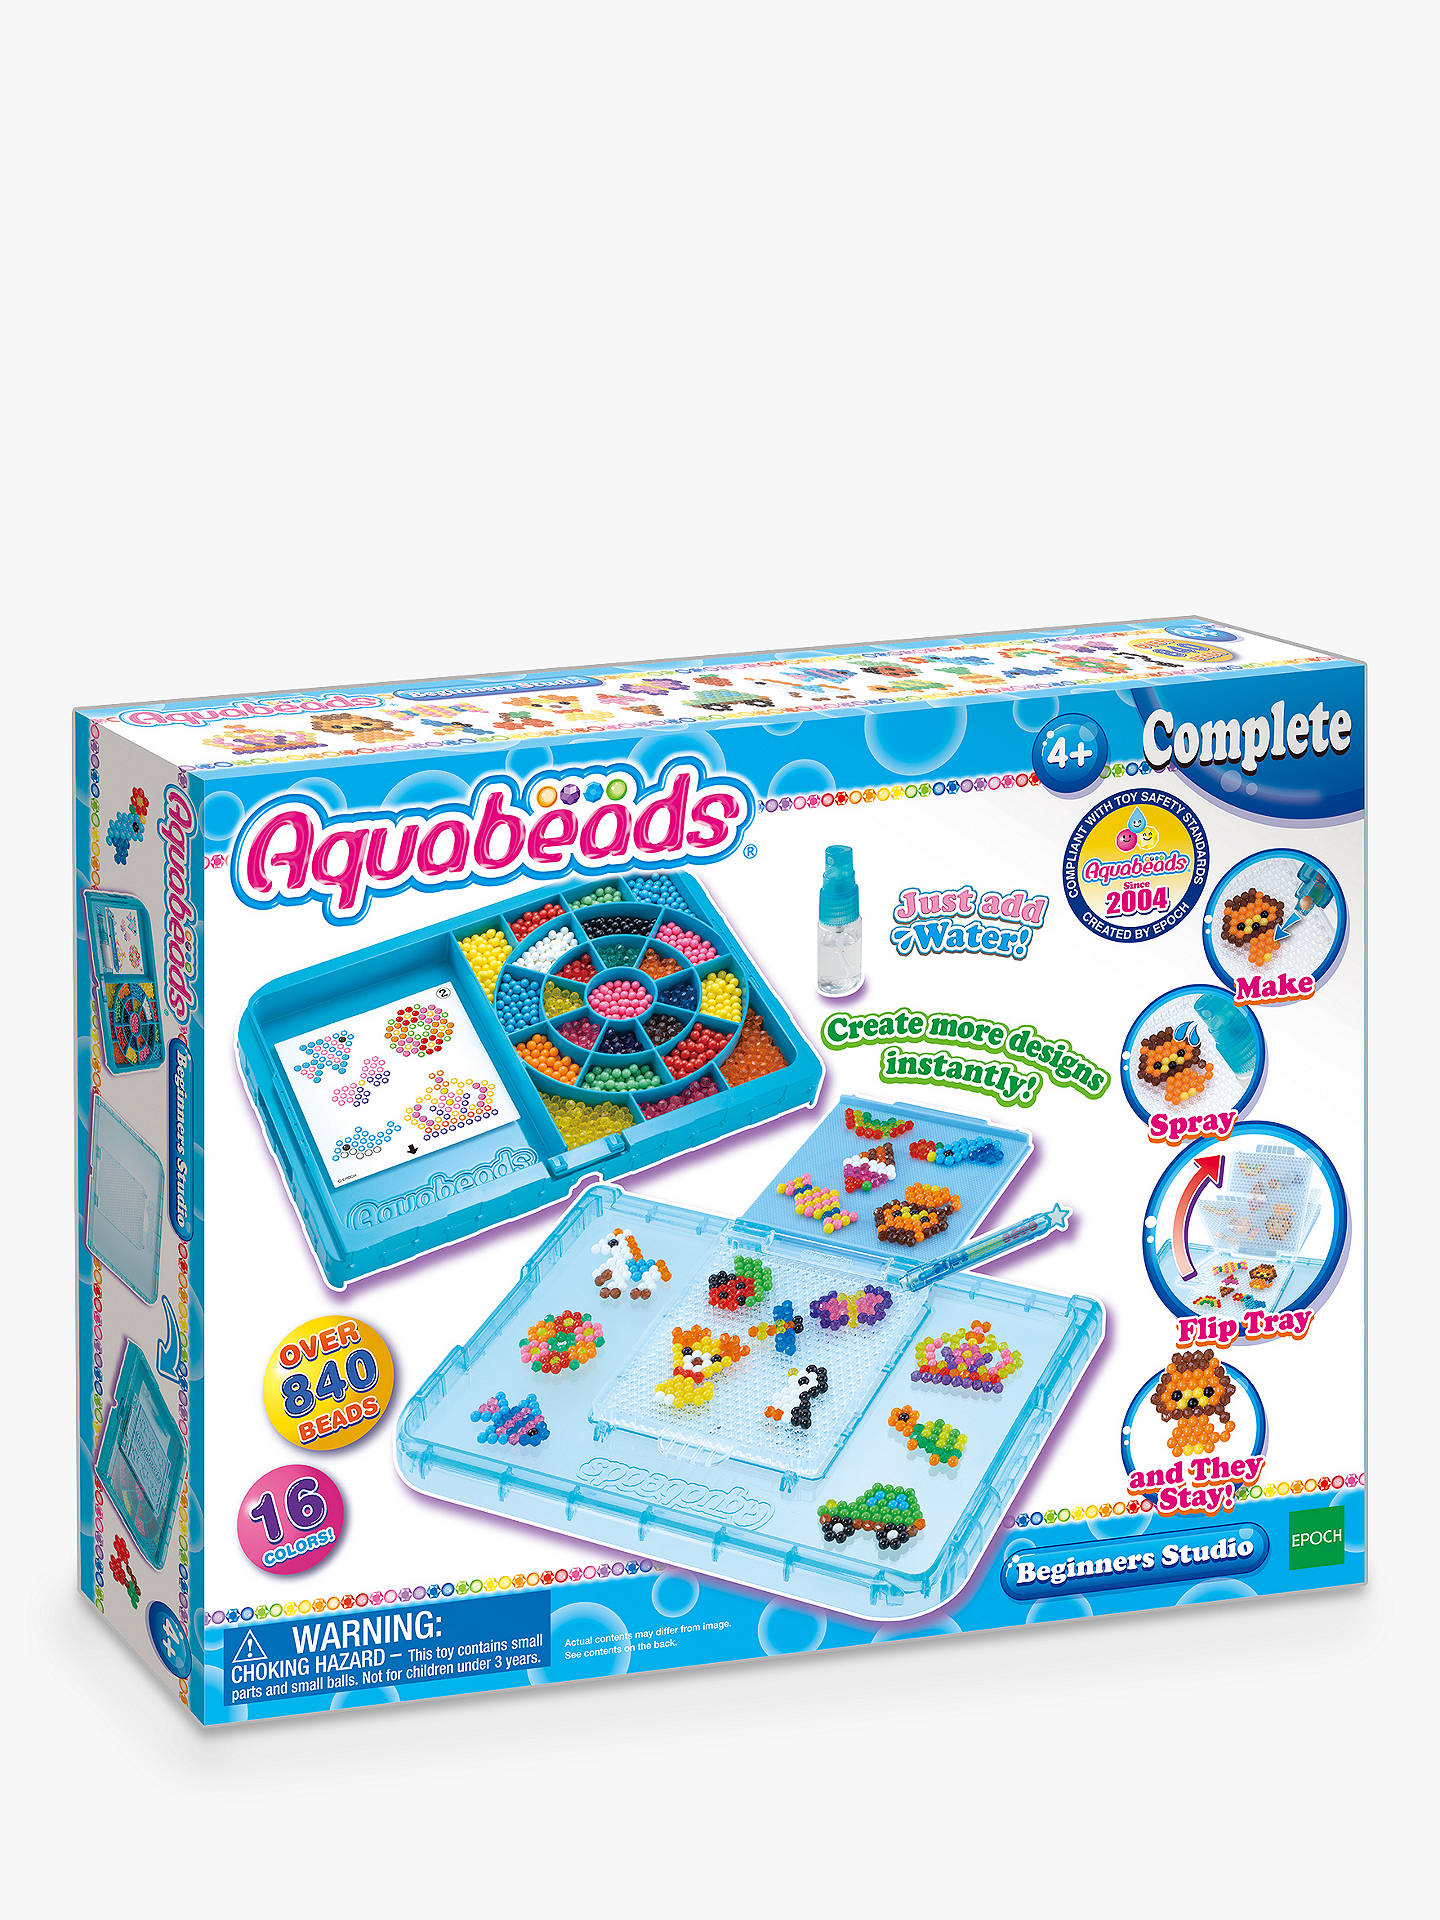 Buy Aquabeads Complete Beginners Studio Online at johnlewis.com